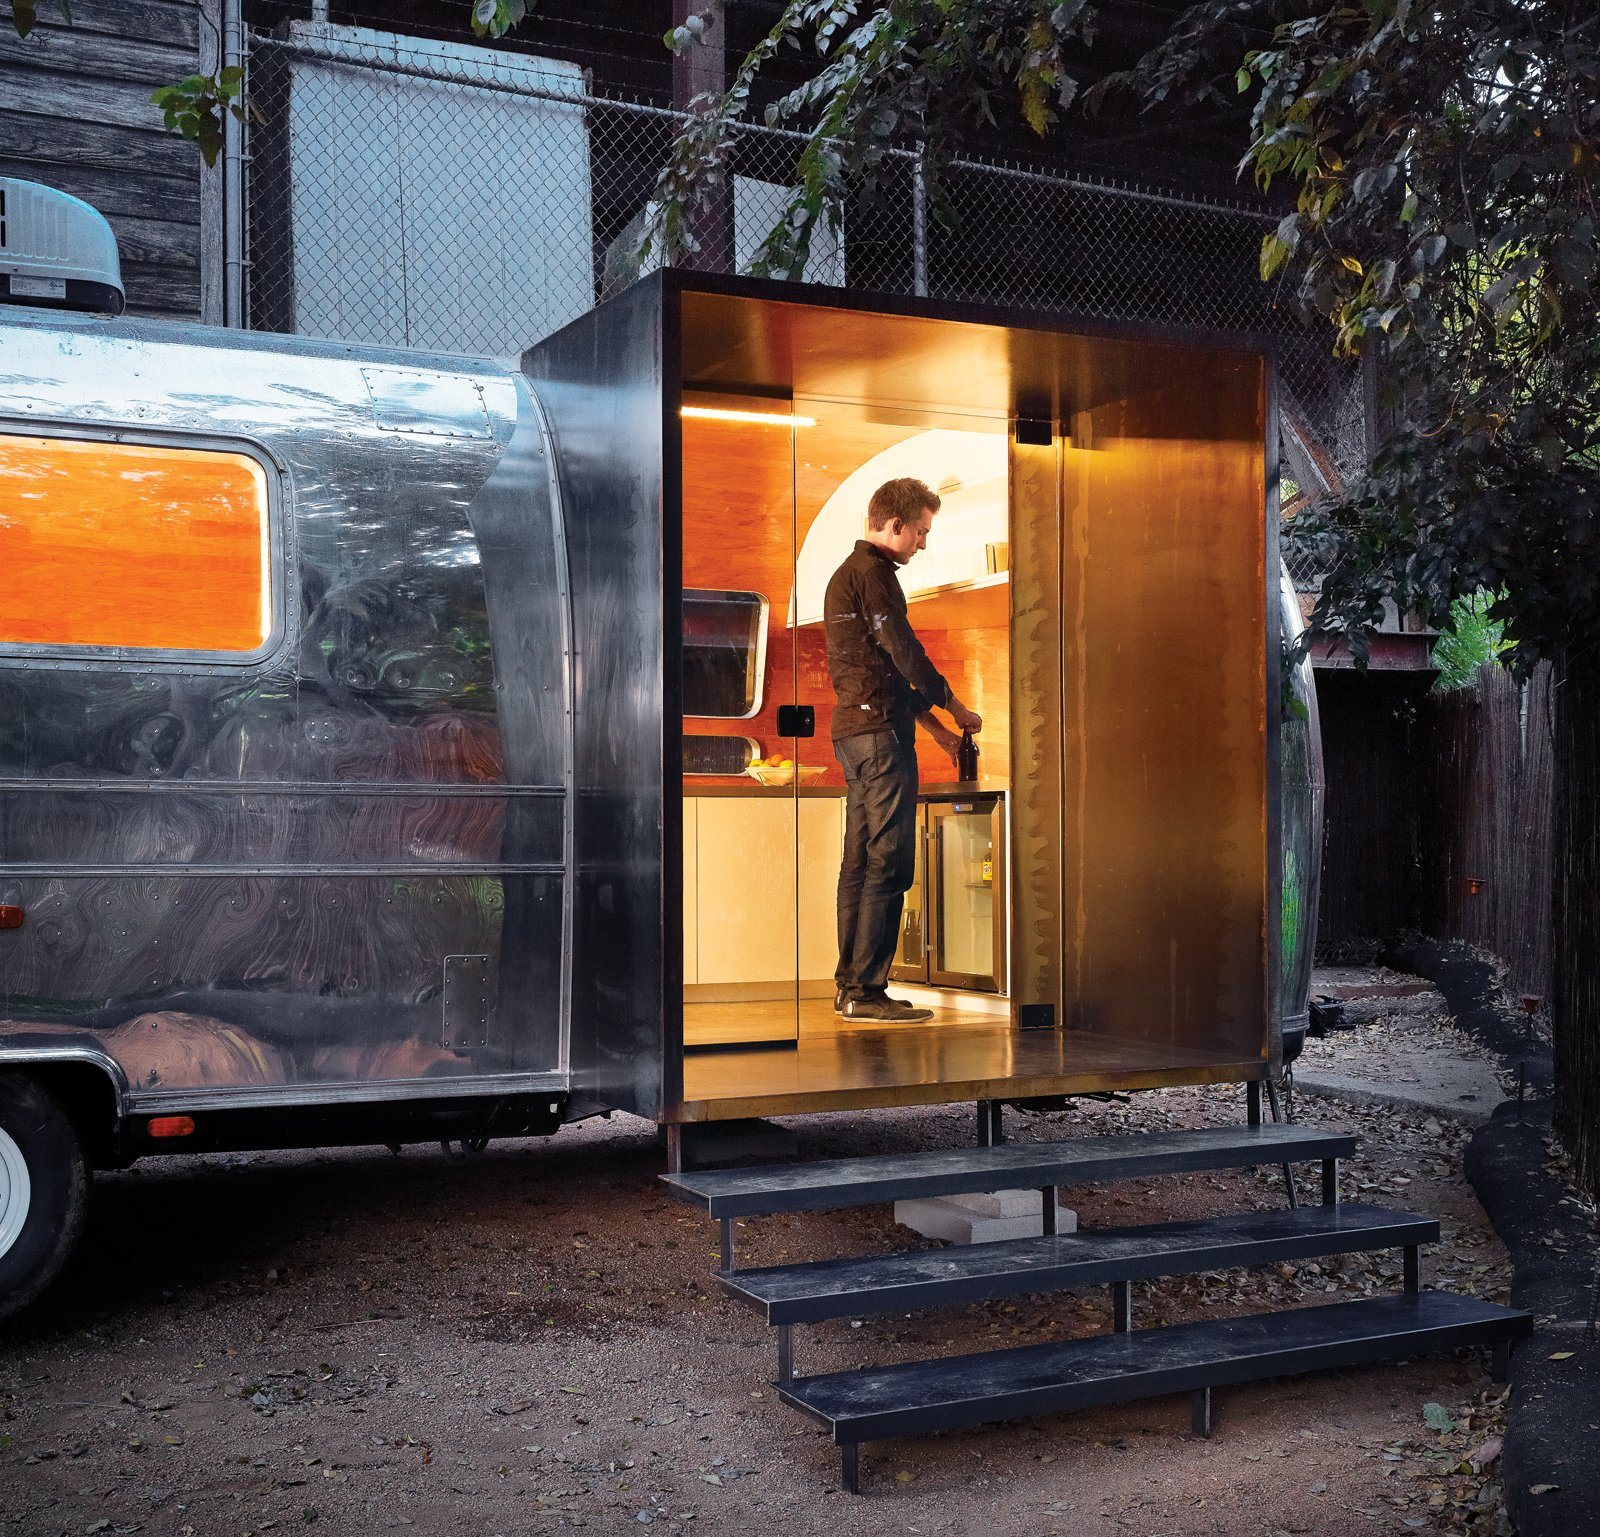 With a last minute deadline, architect Burton Baldridge transformed a decaying trailer into a modern green home for Stubb's, an Austin, Texas club. Baldridge teamed up with Branson Fustes of Pilgrim Building Company to work on the interiors and building custom furniture, such as a bar on one end. Tagged: Exterior and Airstream Building Type.  Photo 7 of 10 in 10 Tiny Trailers to Take on an Adventure from Trailer Flash